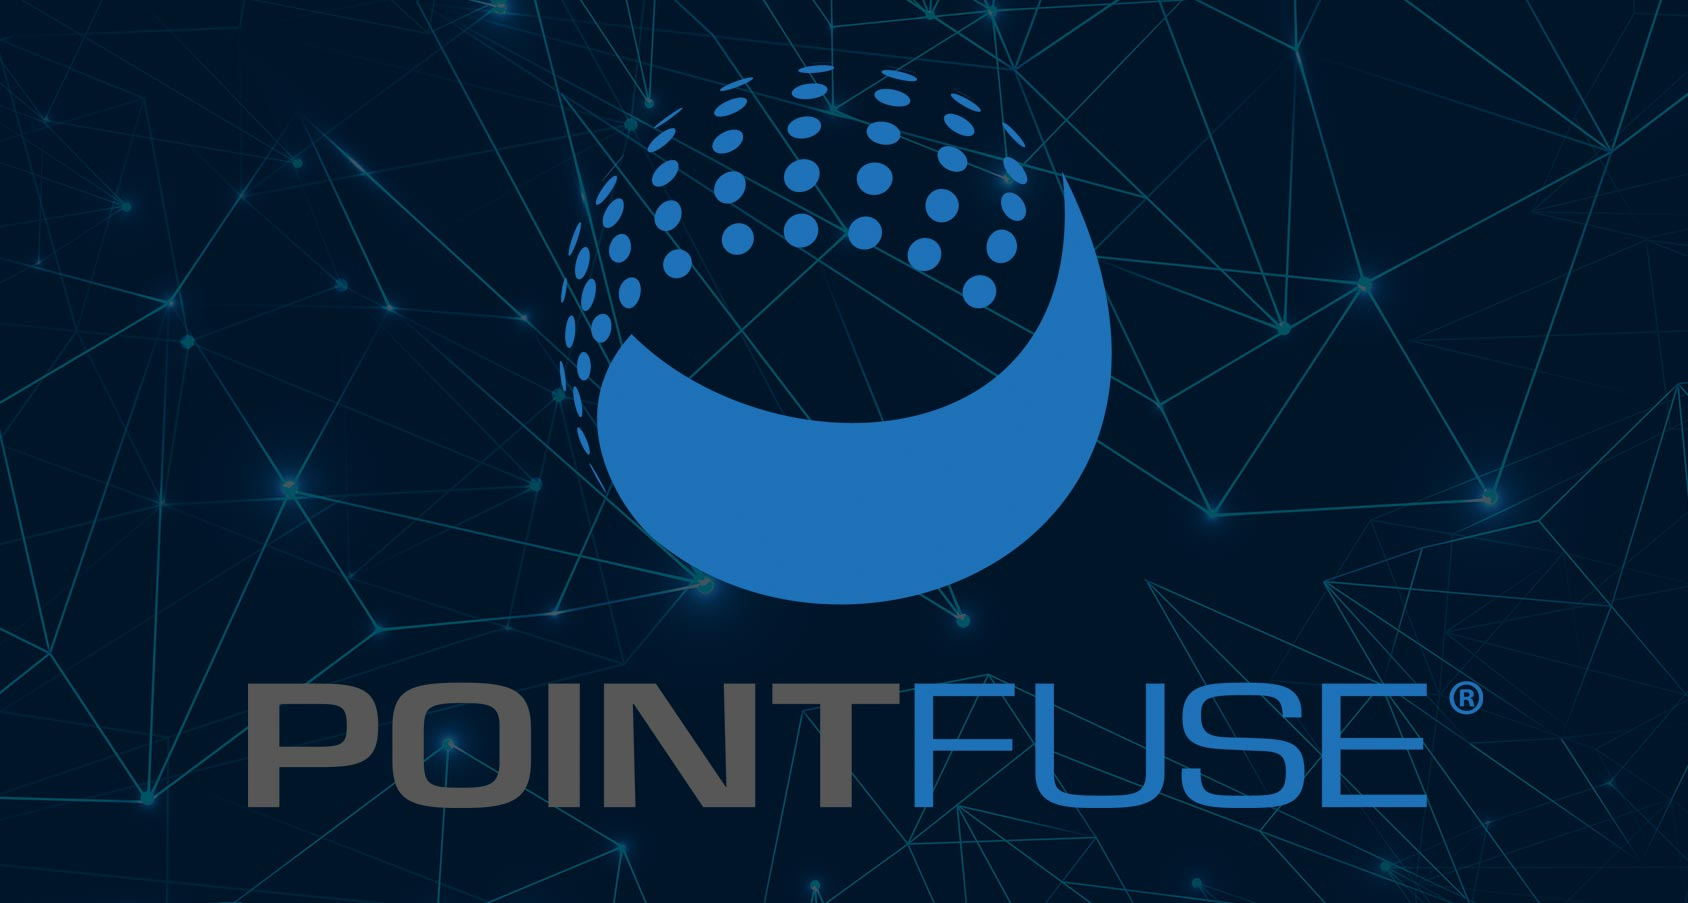 Pointfuse Gains Big Flexibility with Nalpeiron's Zentitle, a case study